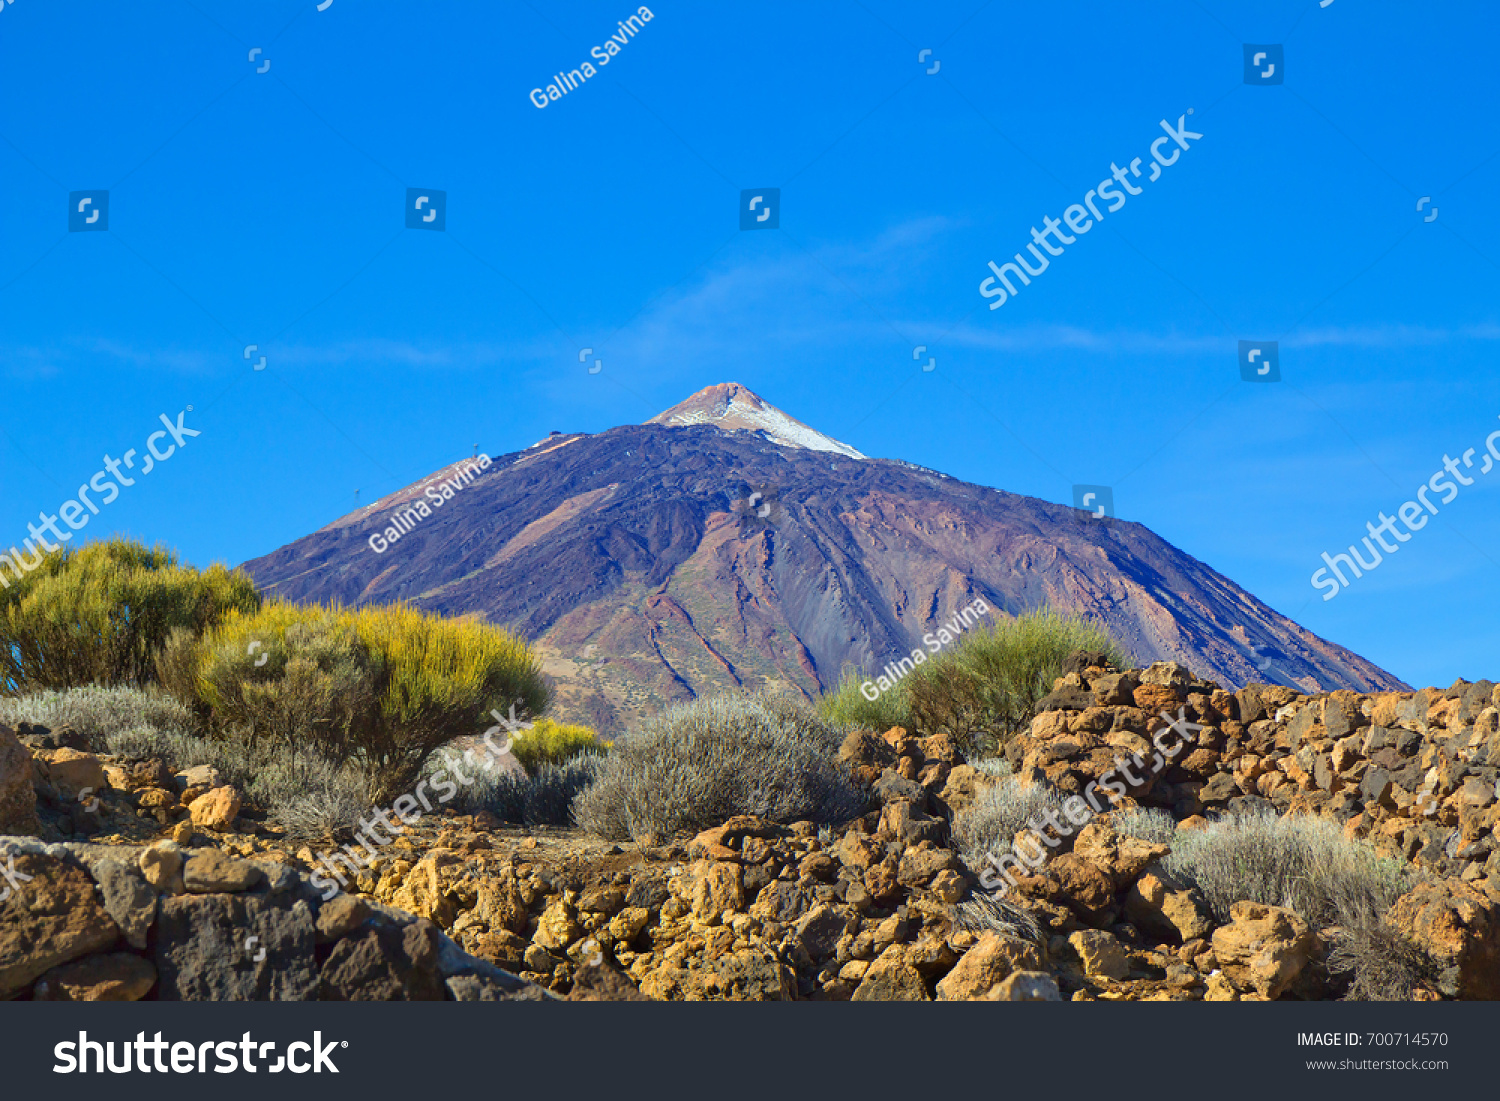 Canary Islands - the main attractions of Tenerife